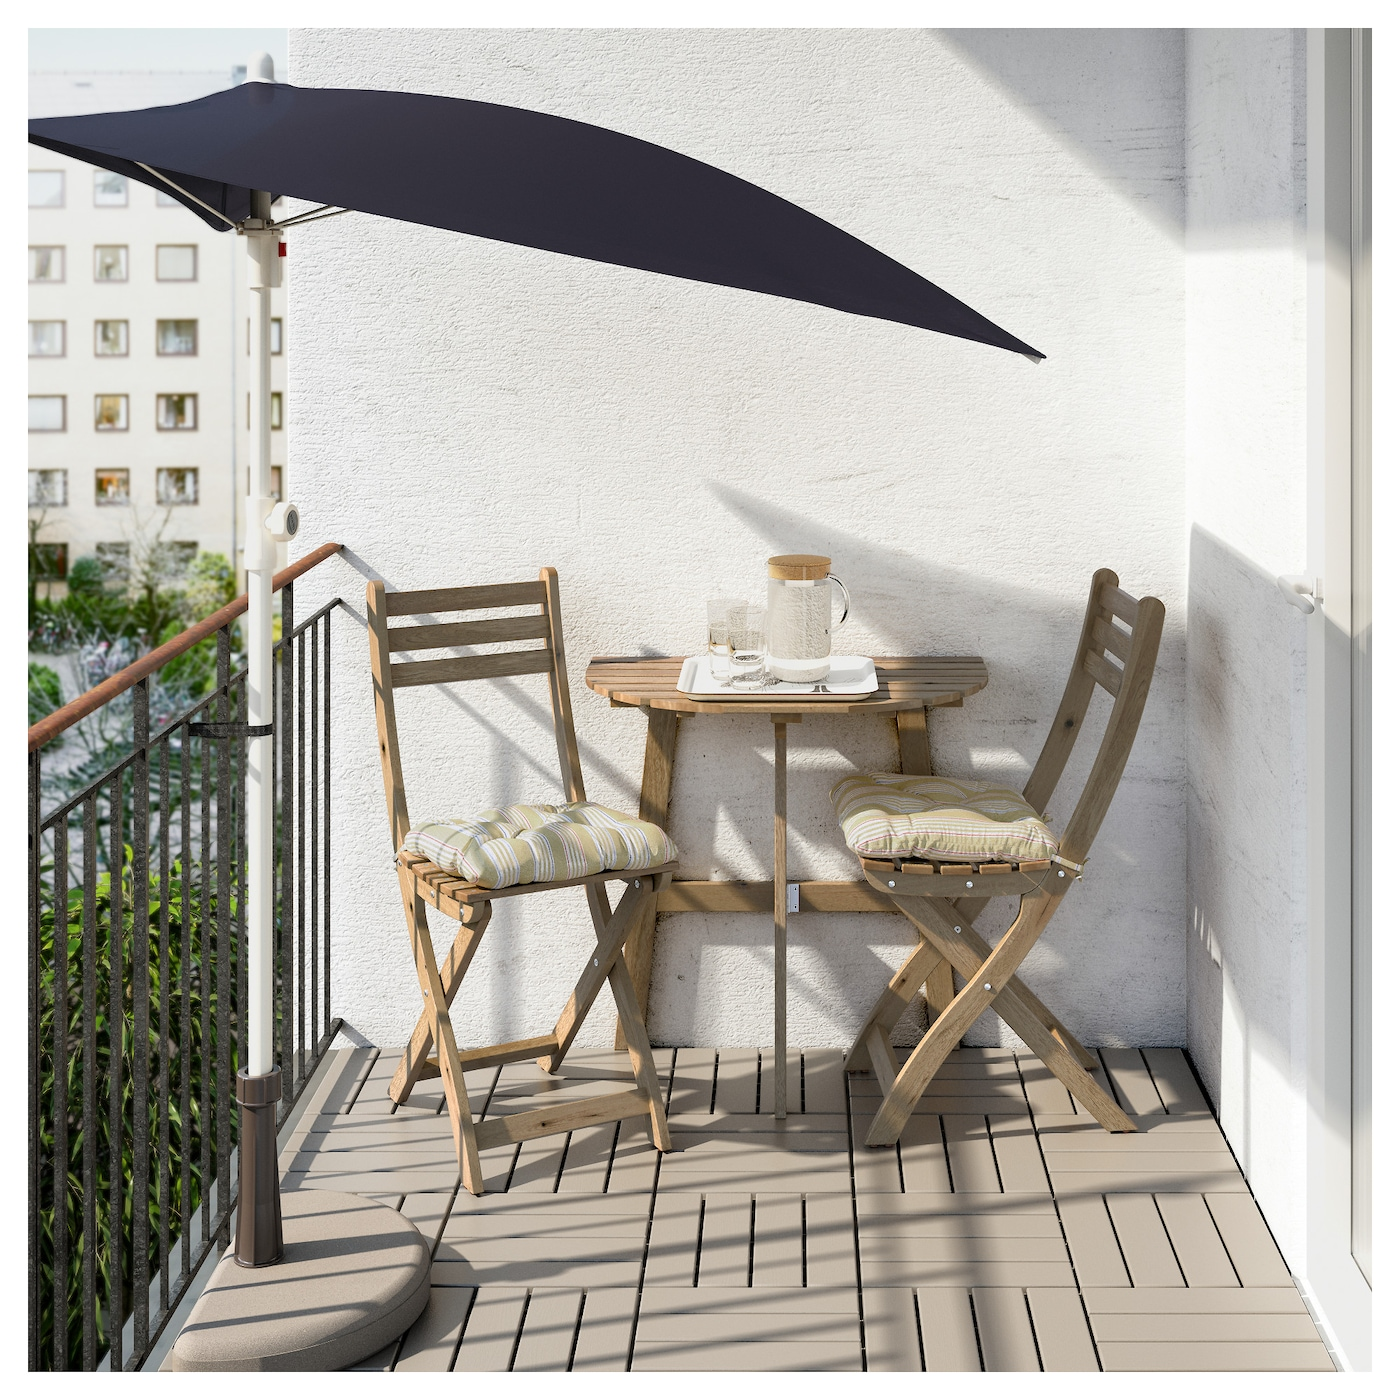 IKEA ASKHOLMEN table f wall+2 fold chairs, outdoor